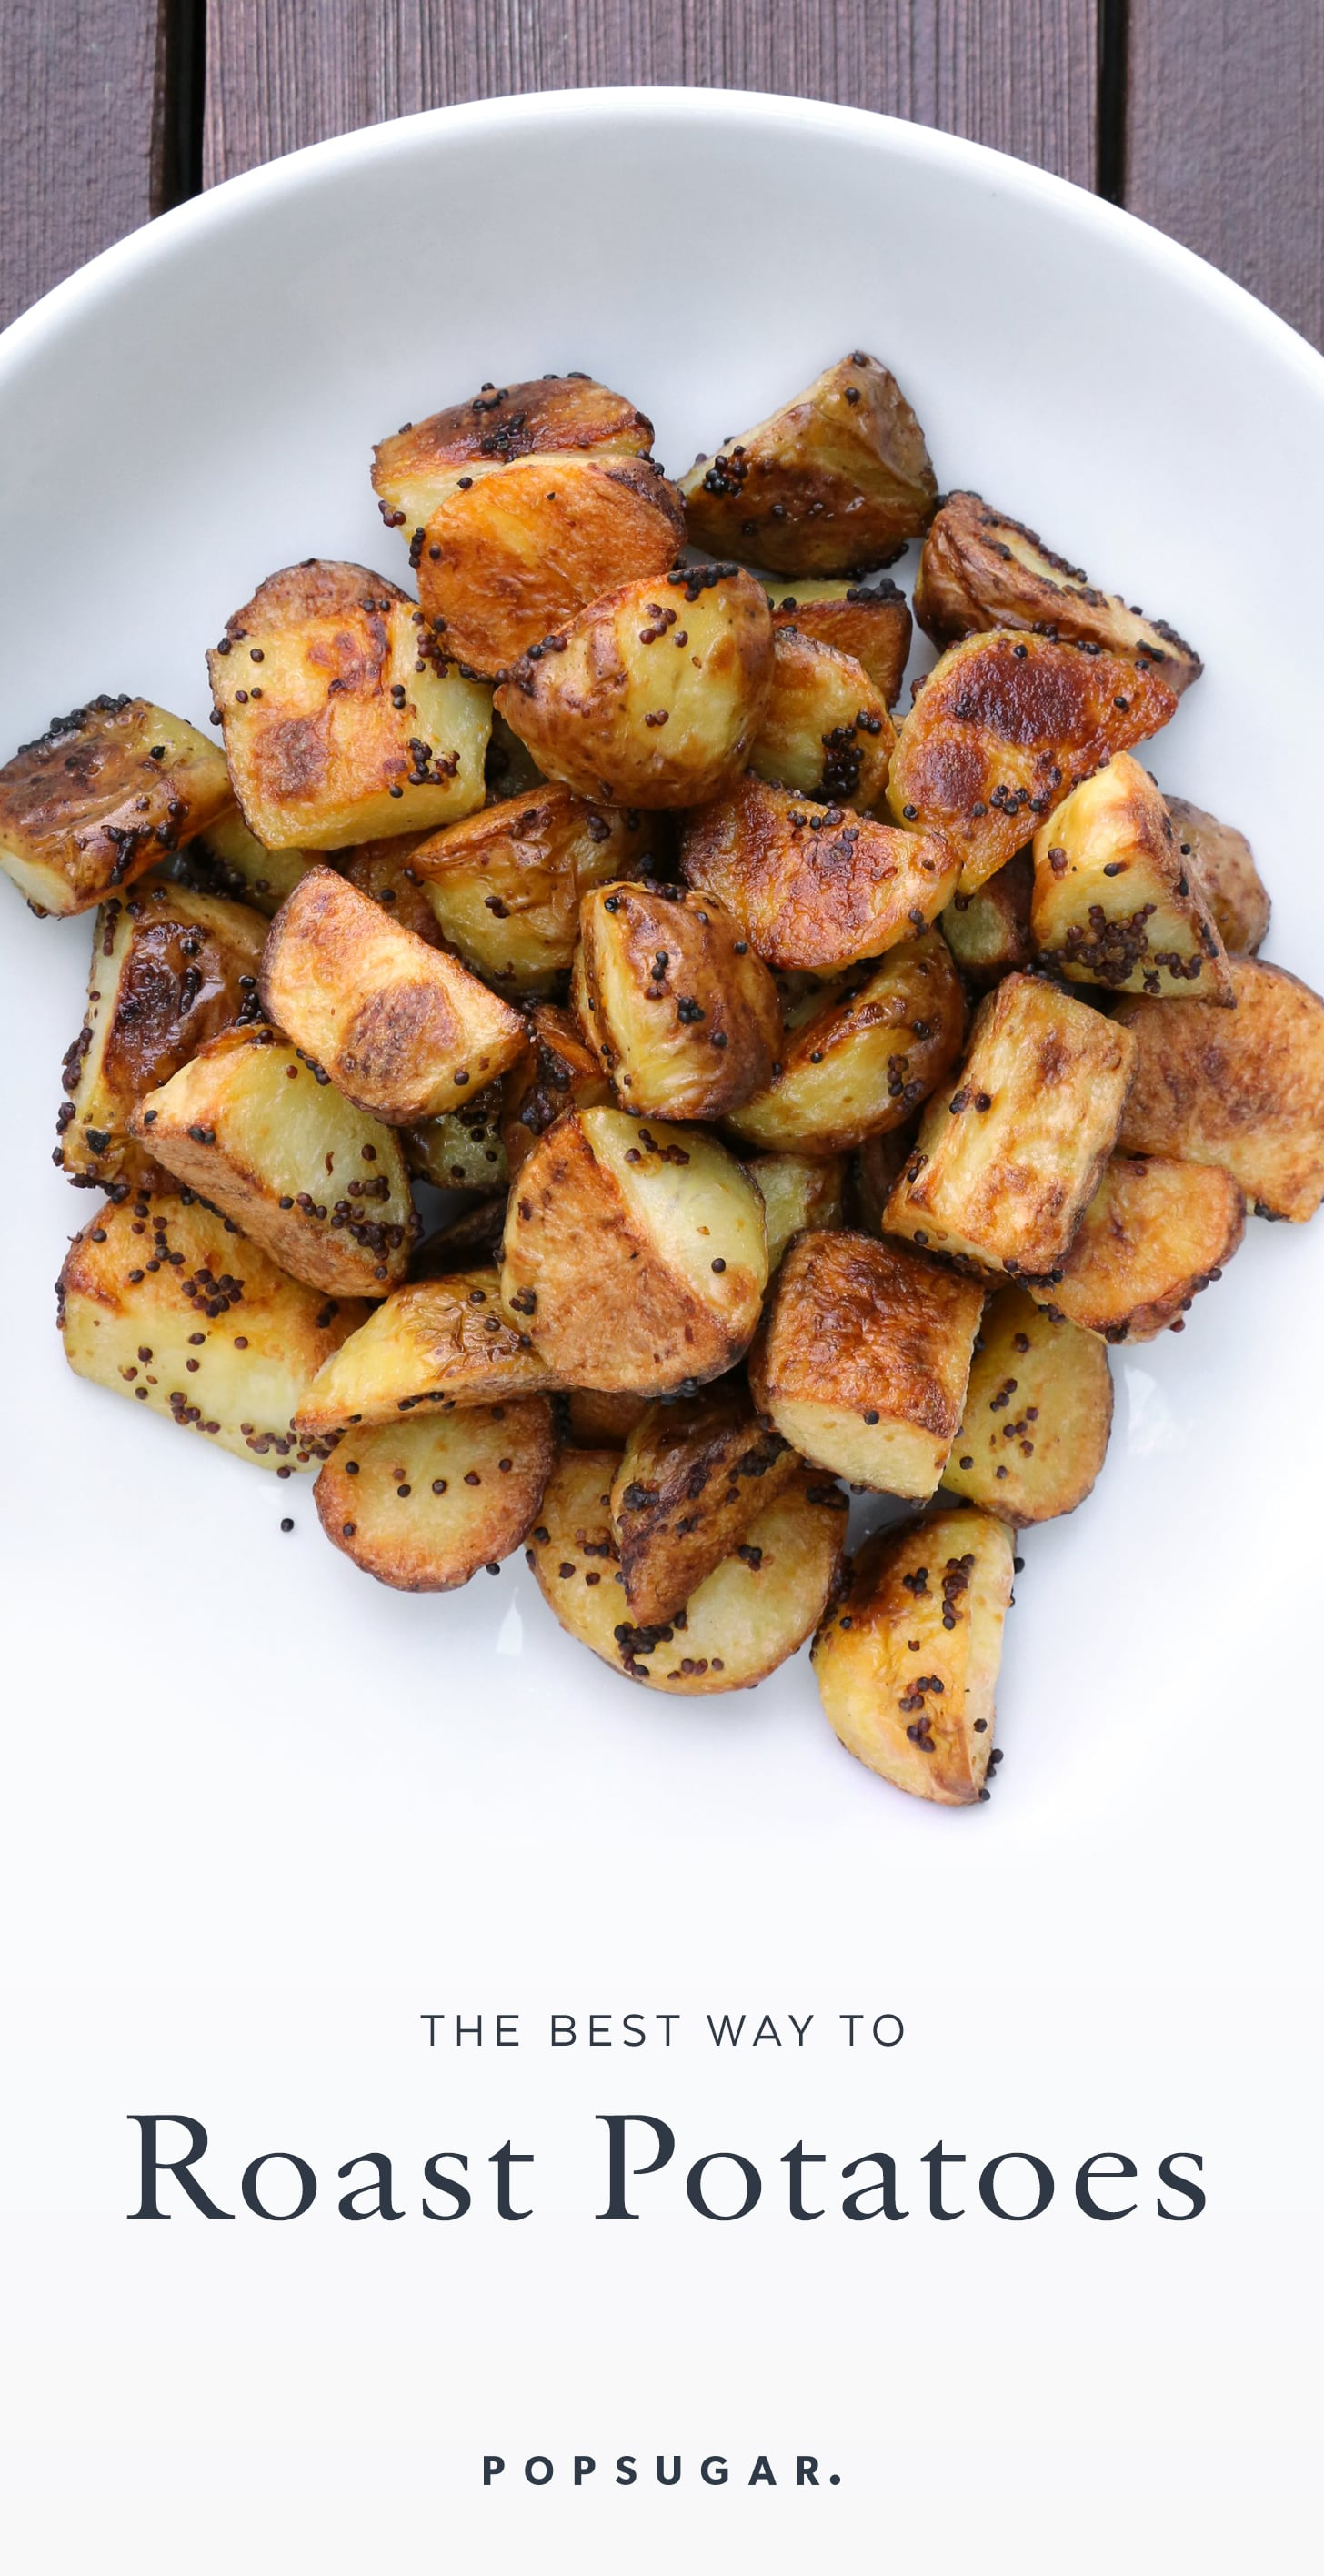 Mustard Roasted Potatoes Recipe | POPSUGAR Food